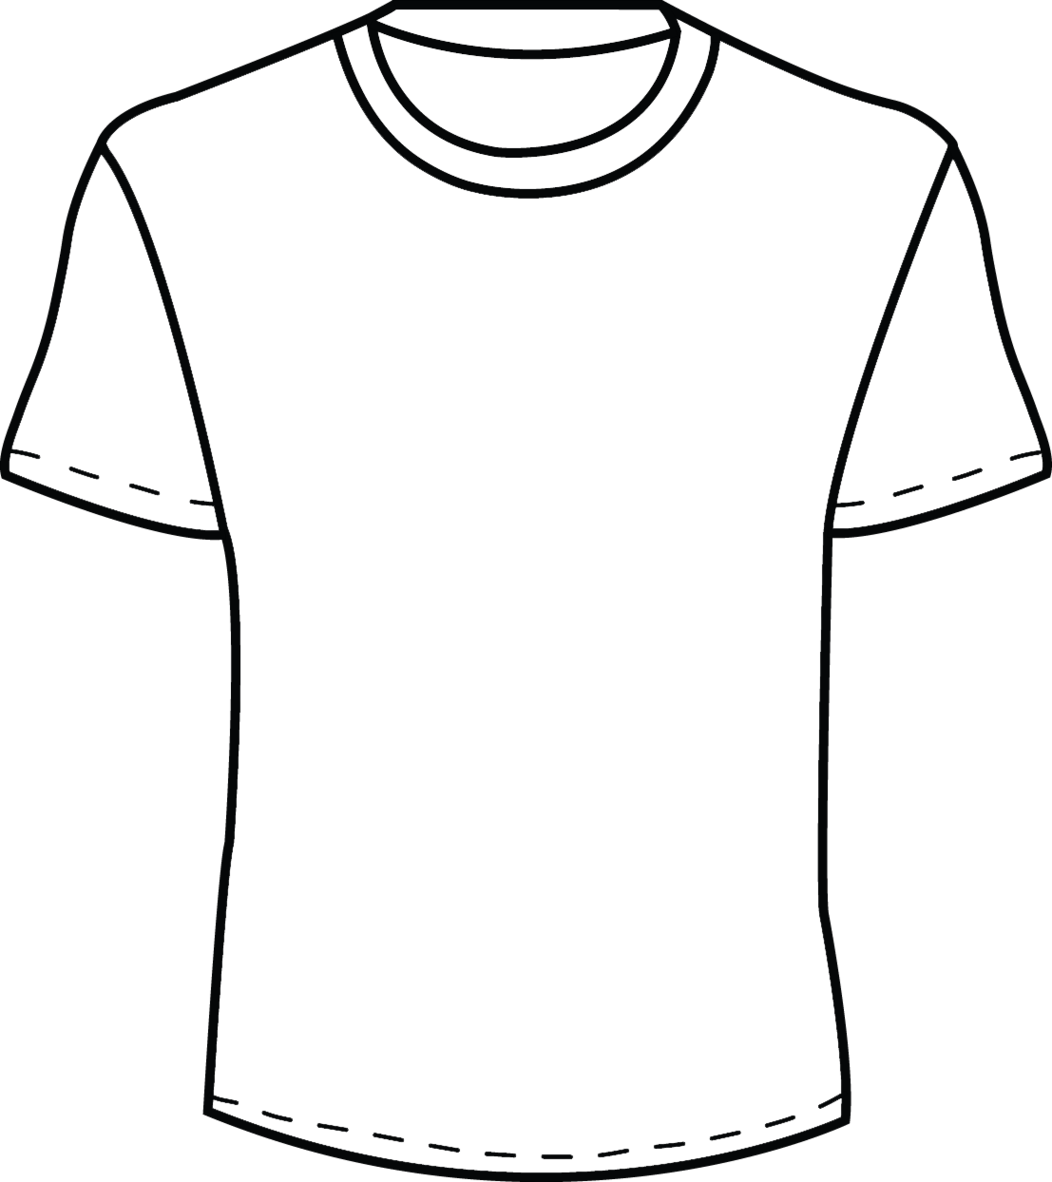 Blank T Shirt Template For Colouring - ClipArt Best